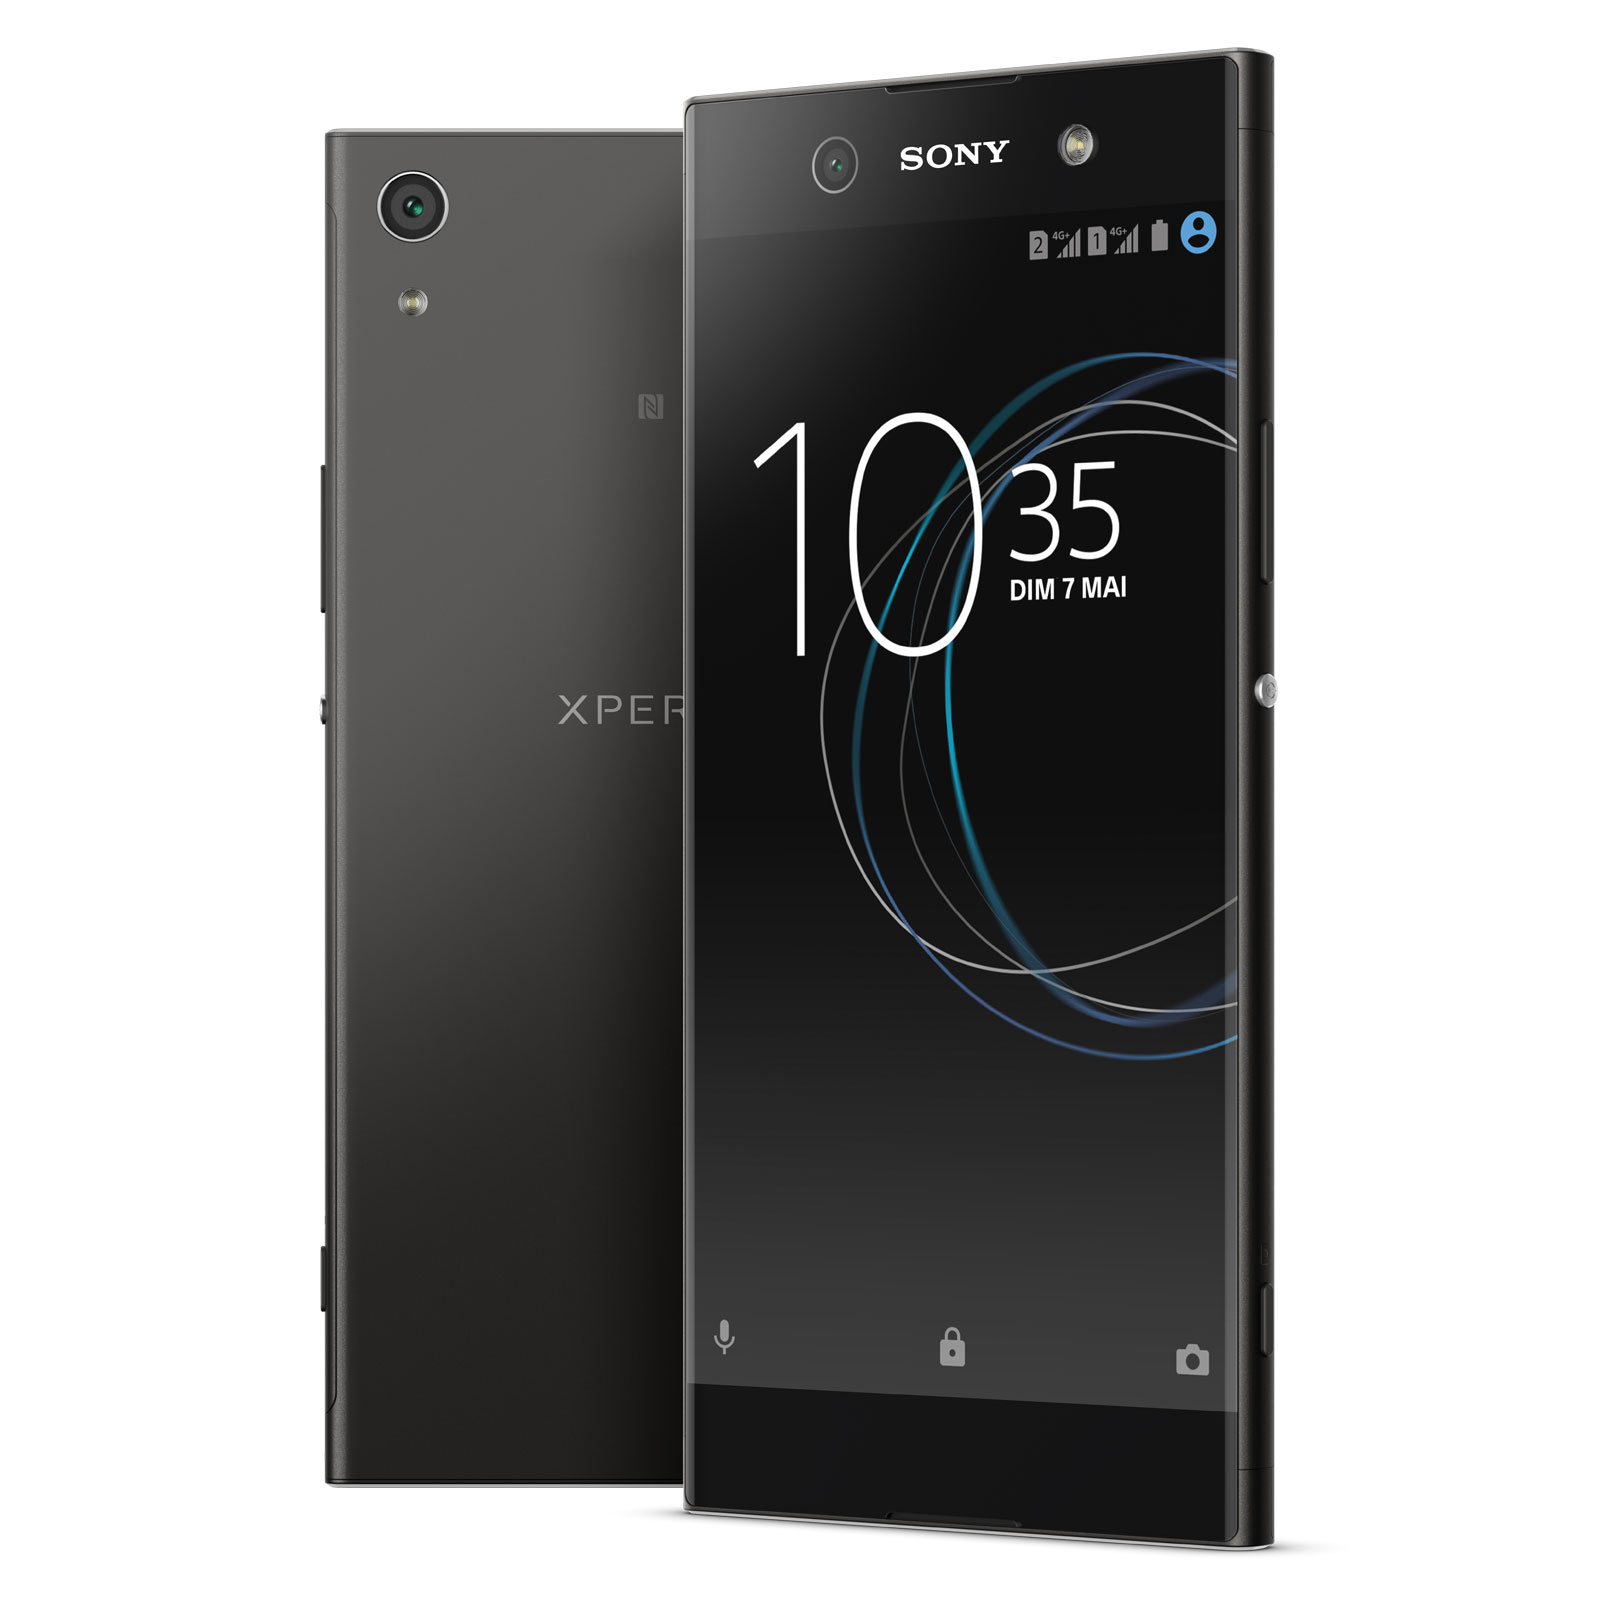 sony xperia xa1 ultra dual sim 32 go noir mobile smartphone sony sur. Black Bedroom Furniture Sets. Home Design Ideas